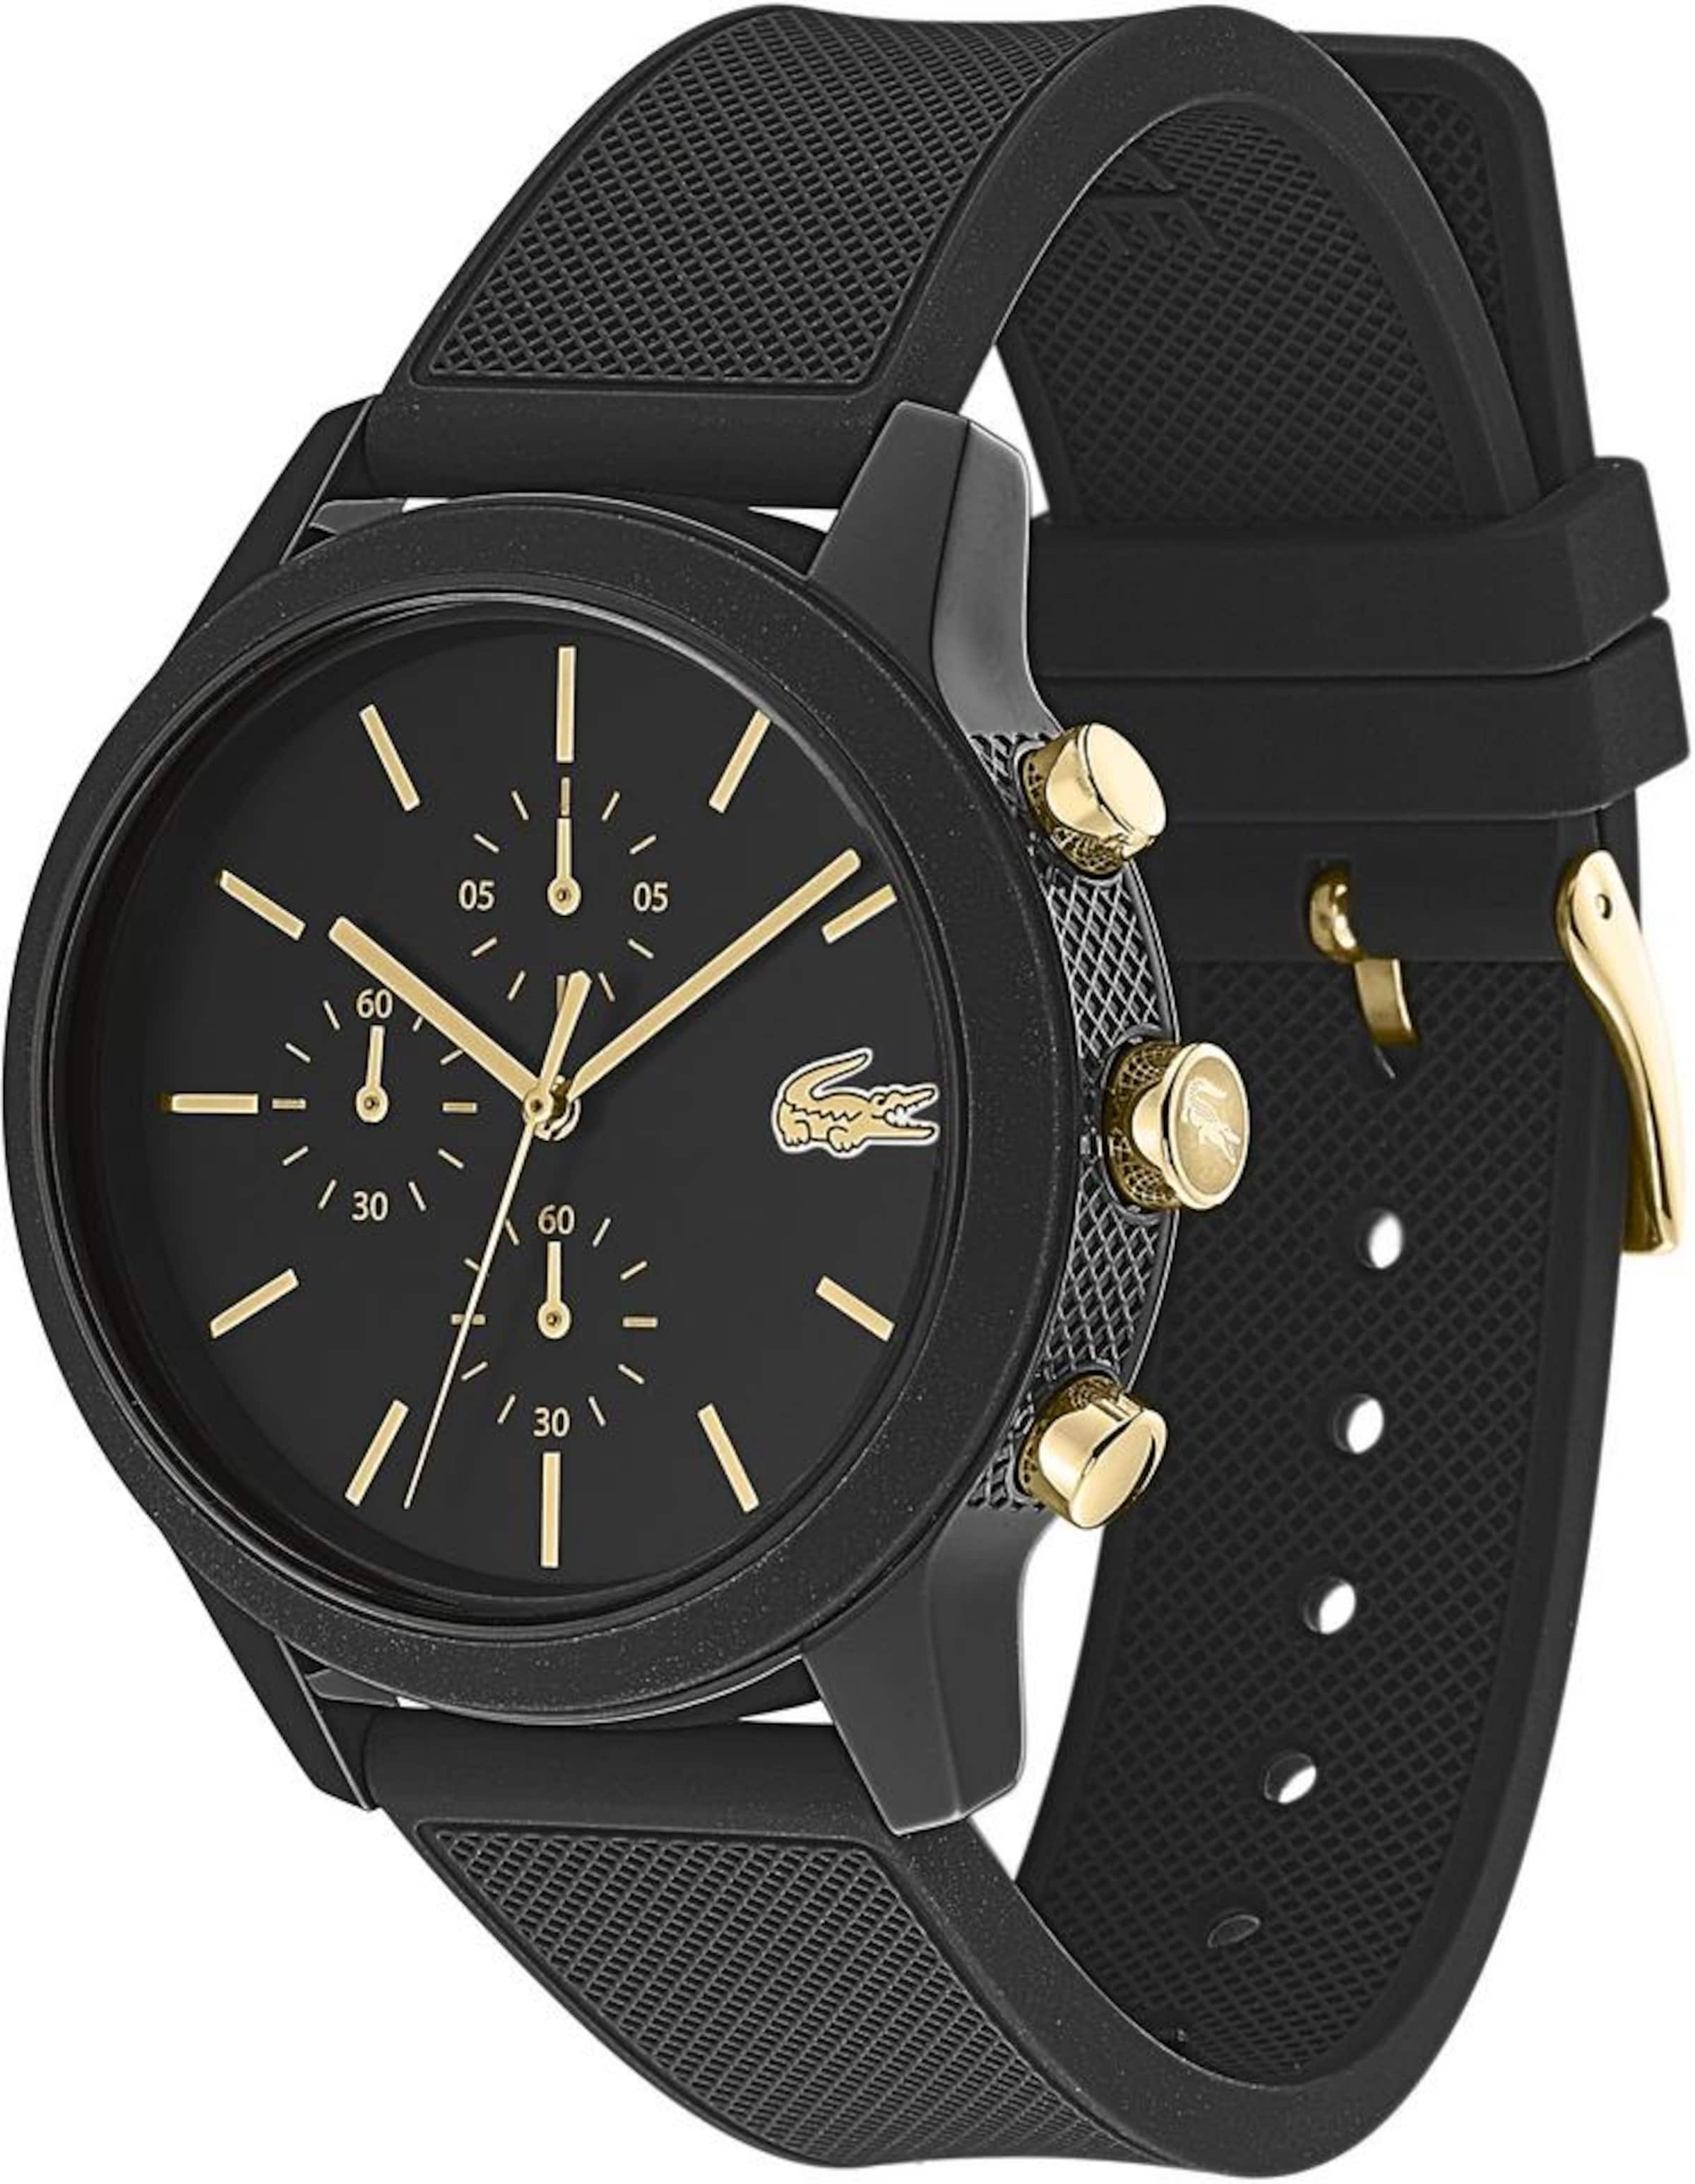 12 'lacoste Lacoste In Chronograph 122011012' Schwarz bf7Ygy6v